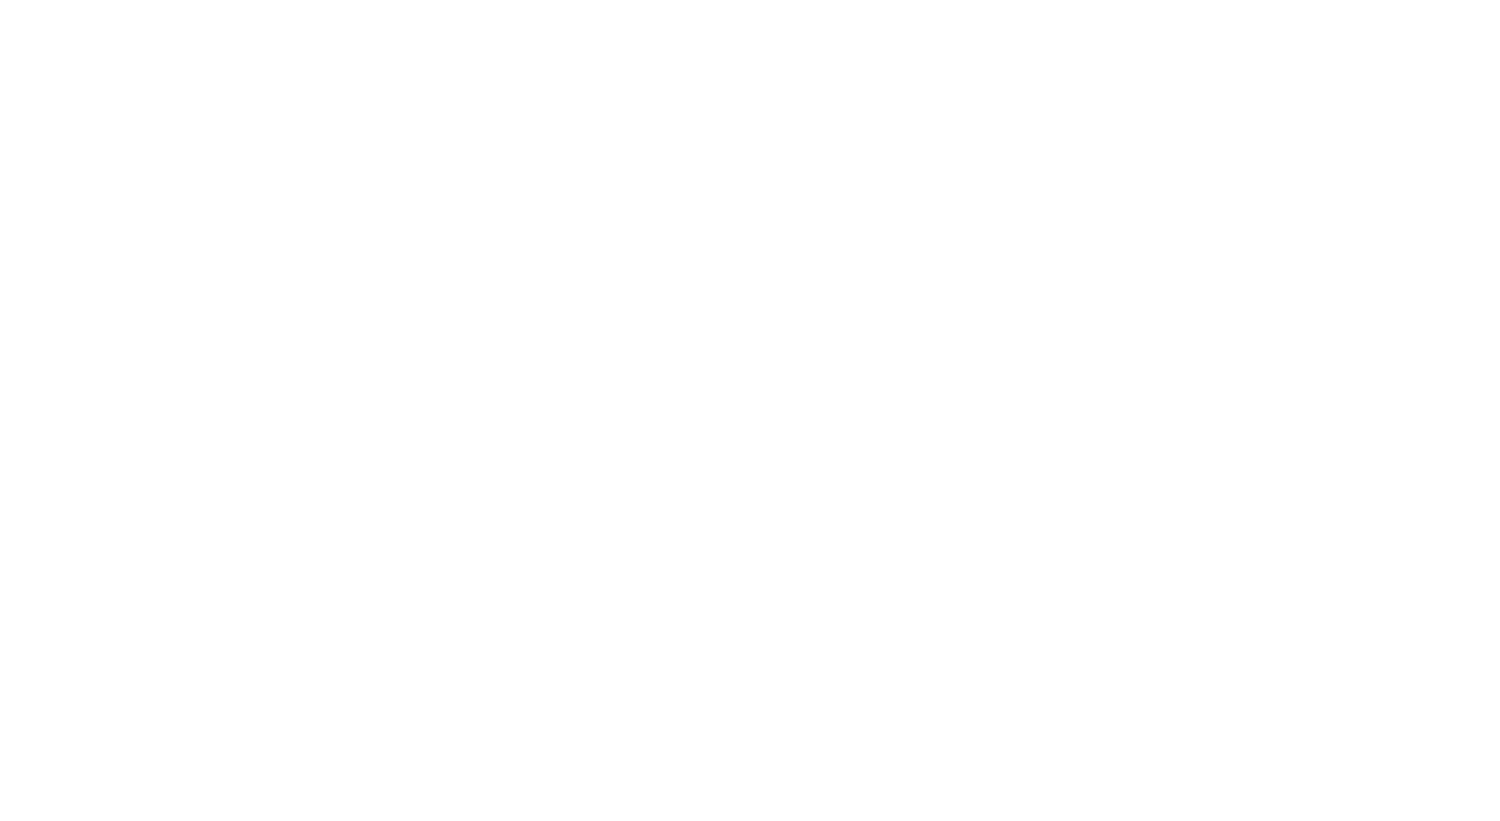 V-Hiking Tours